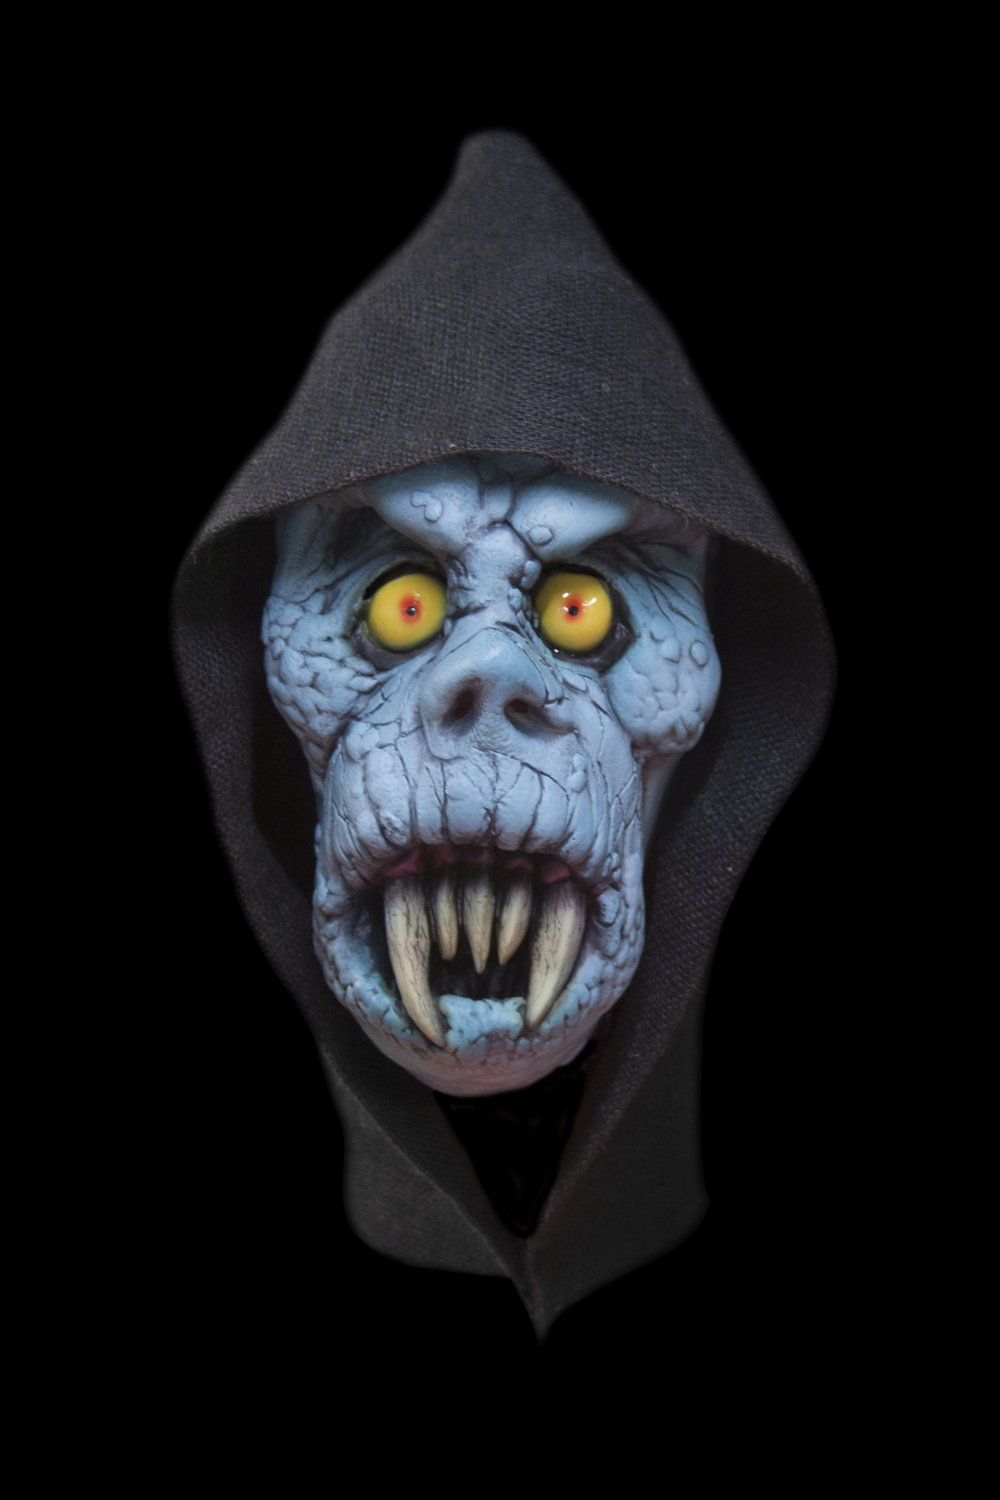 Blue Banshee Prehistoric Zombie Ghoul Ghost Monster Creature Scary Full Head Halloween Mask